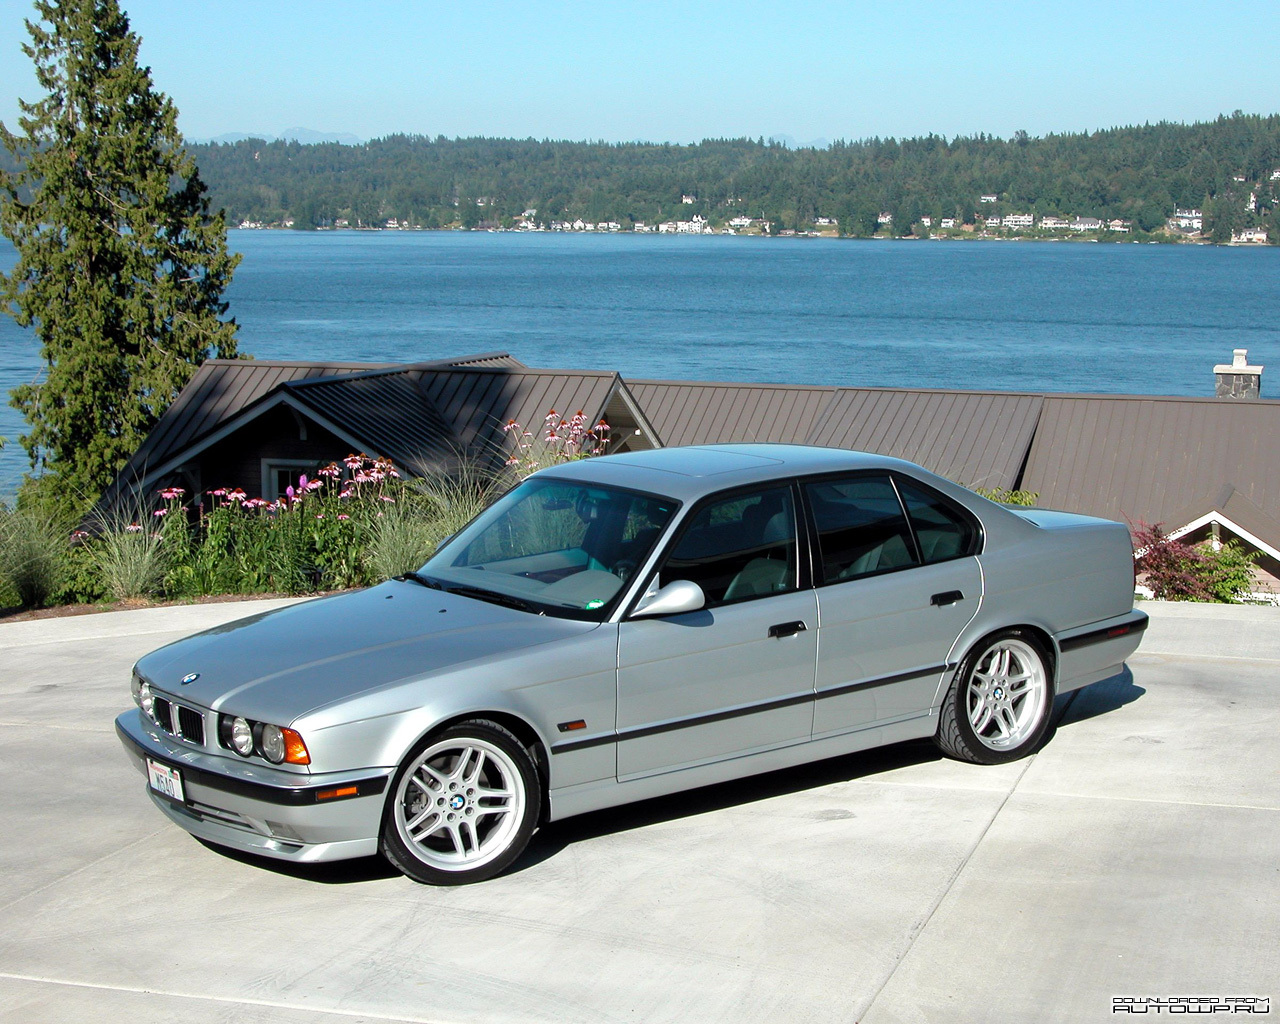 Bmw M5 E34 Picture 64211 Bmw Photo Gallery Carsbase Com